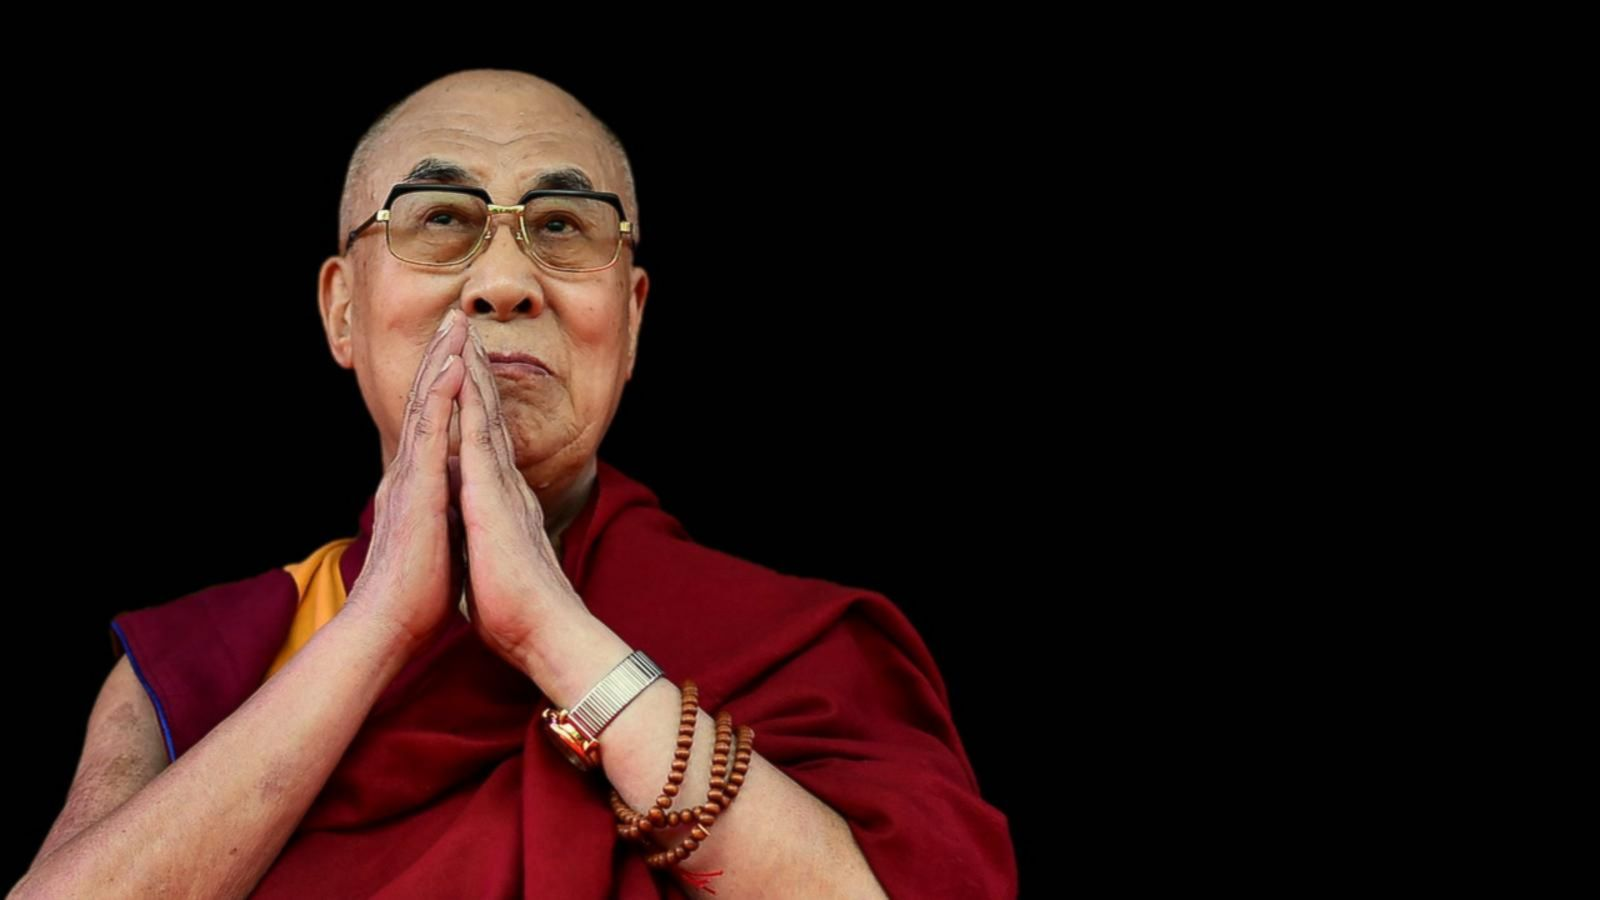 Dalai Lama Is Doing Fine After Being Hospitalized In